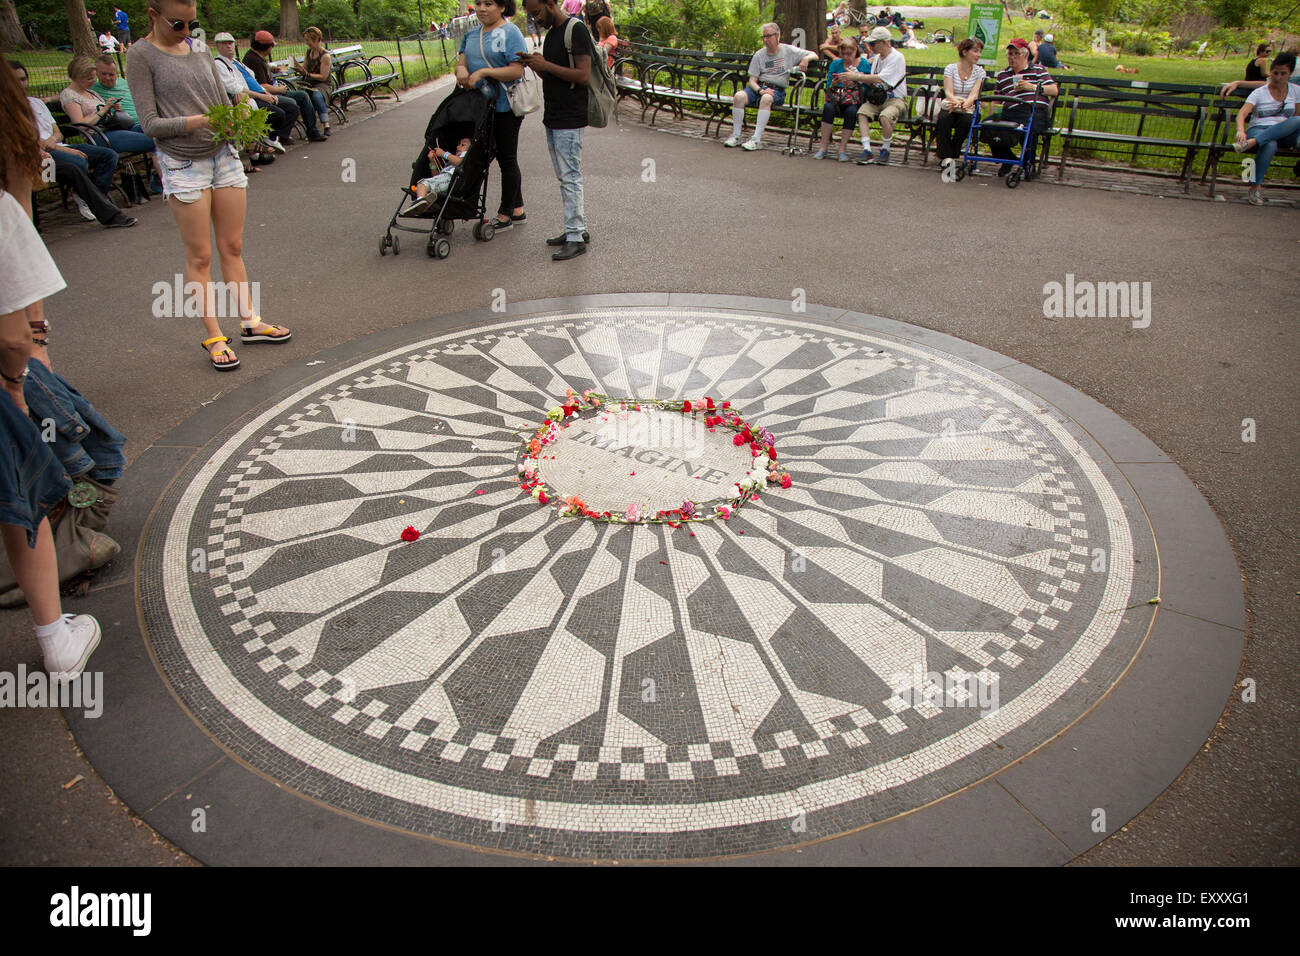 NEW YORK - May 25, 2015: People gather at Strawberry Fields in Central Park, New York City. Strawberry Fields is Stock Photo